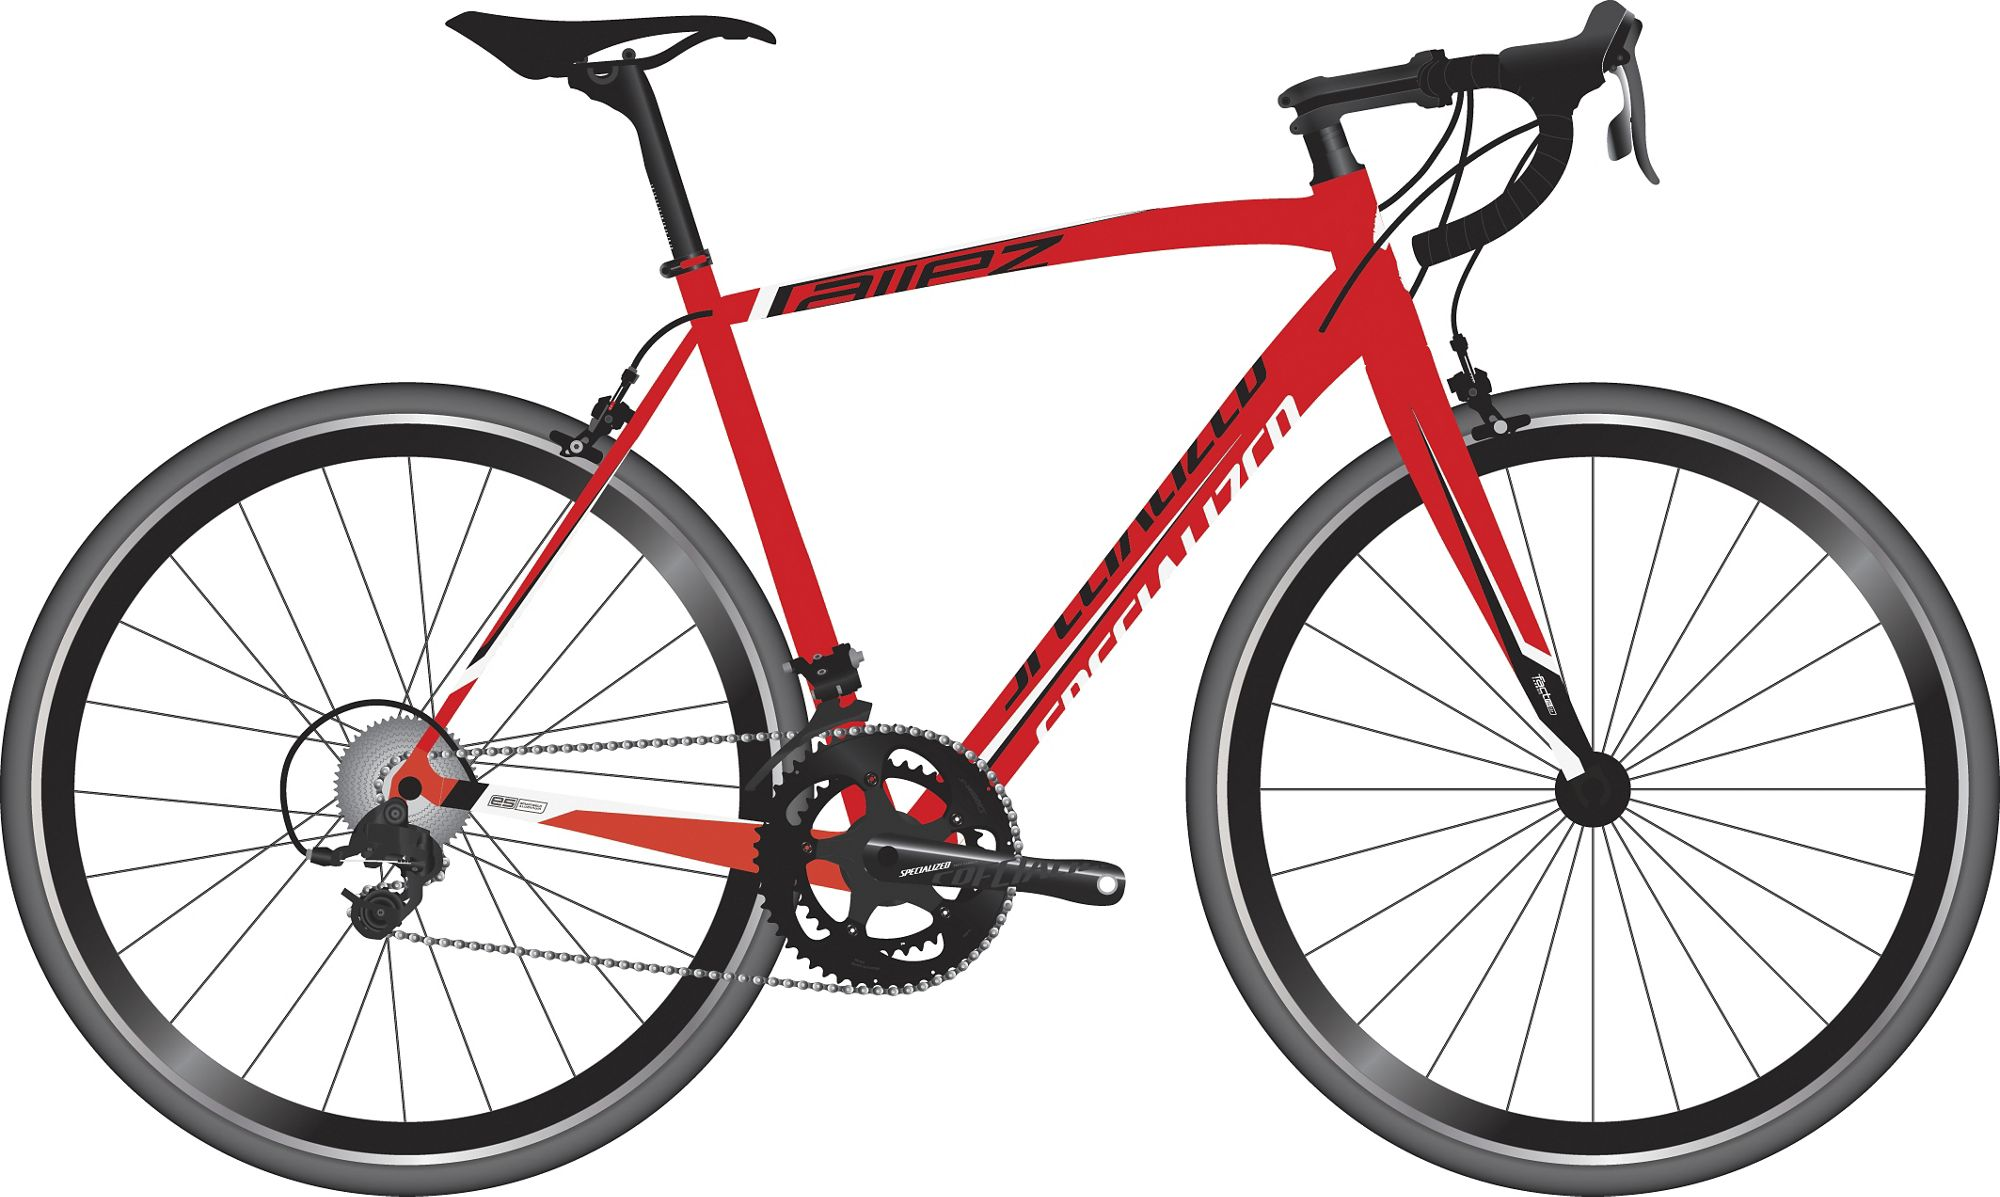 Specialized Allez Junior 650 2015 review - The Bike List